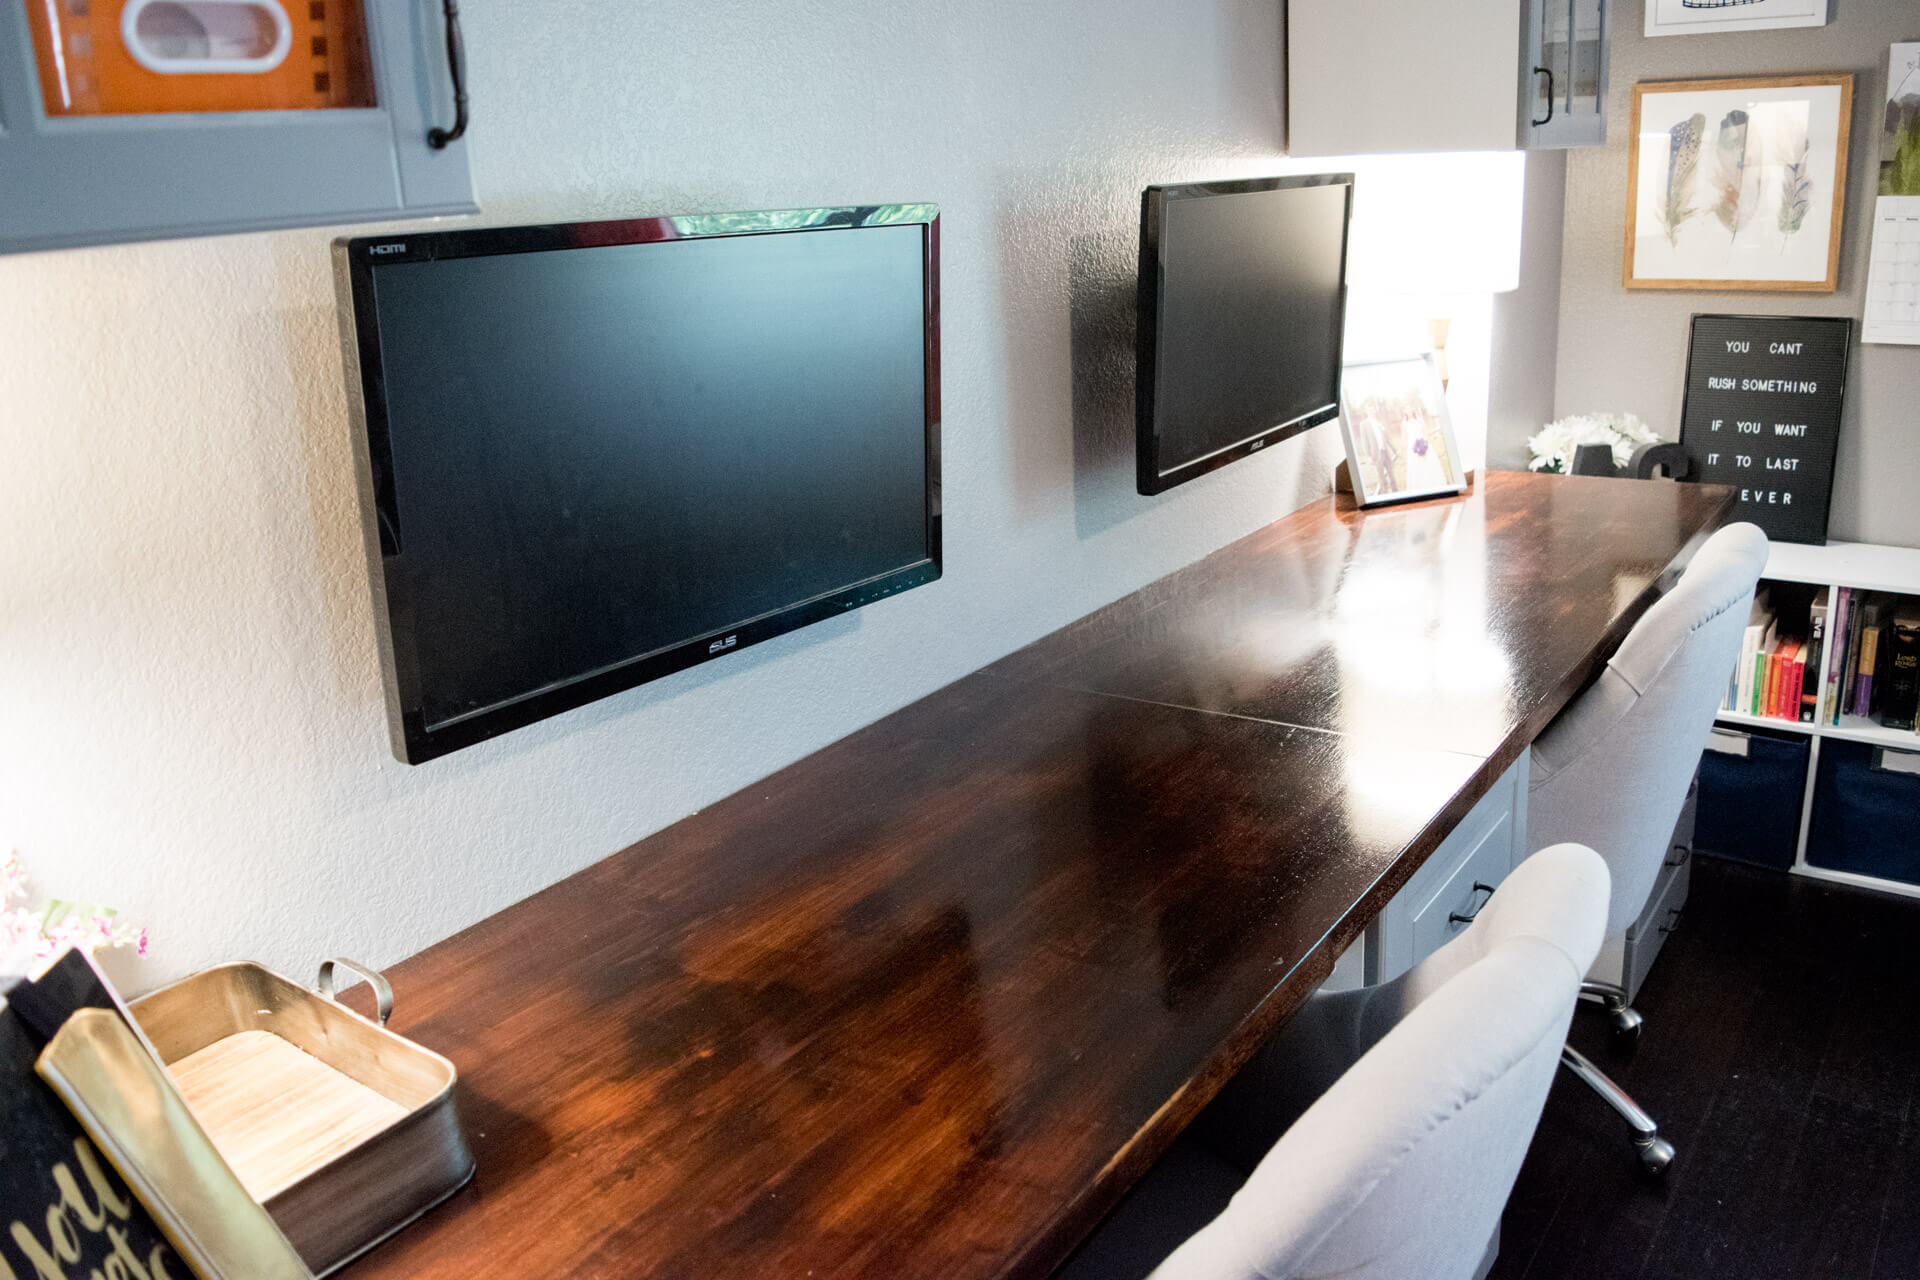 DIY Without Fear | How To Make A Desk From Kitchen Cabinets: Part Two